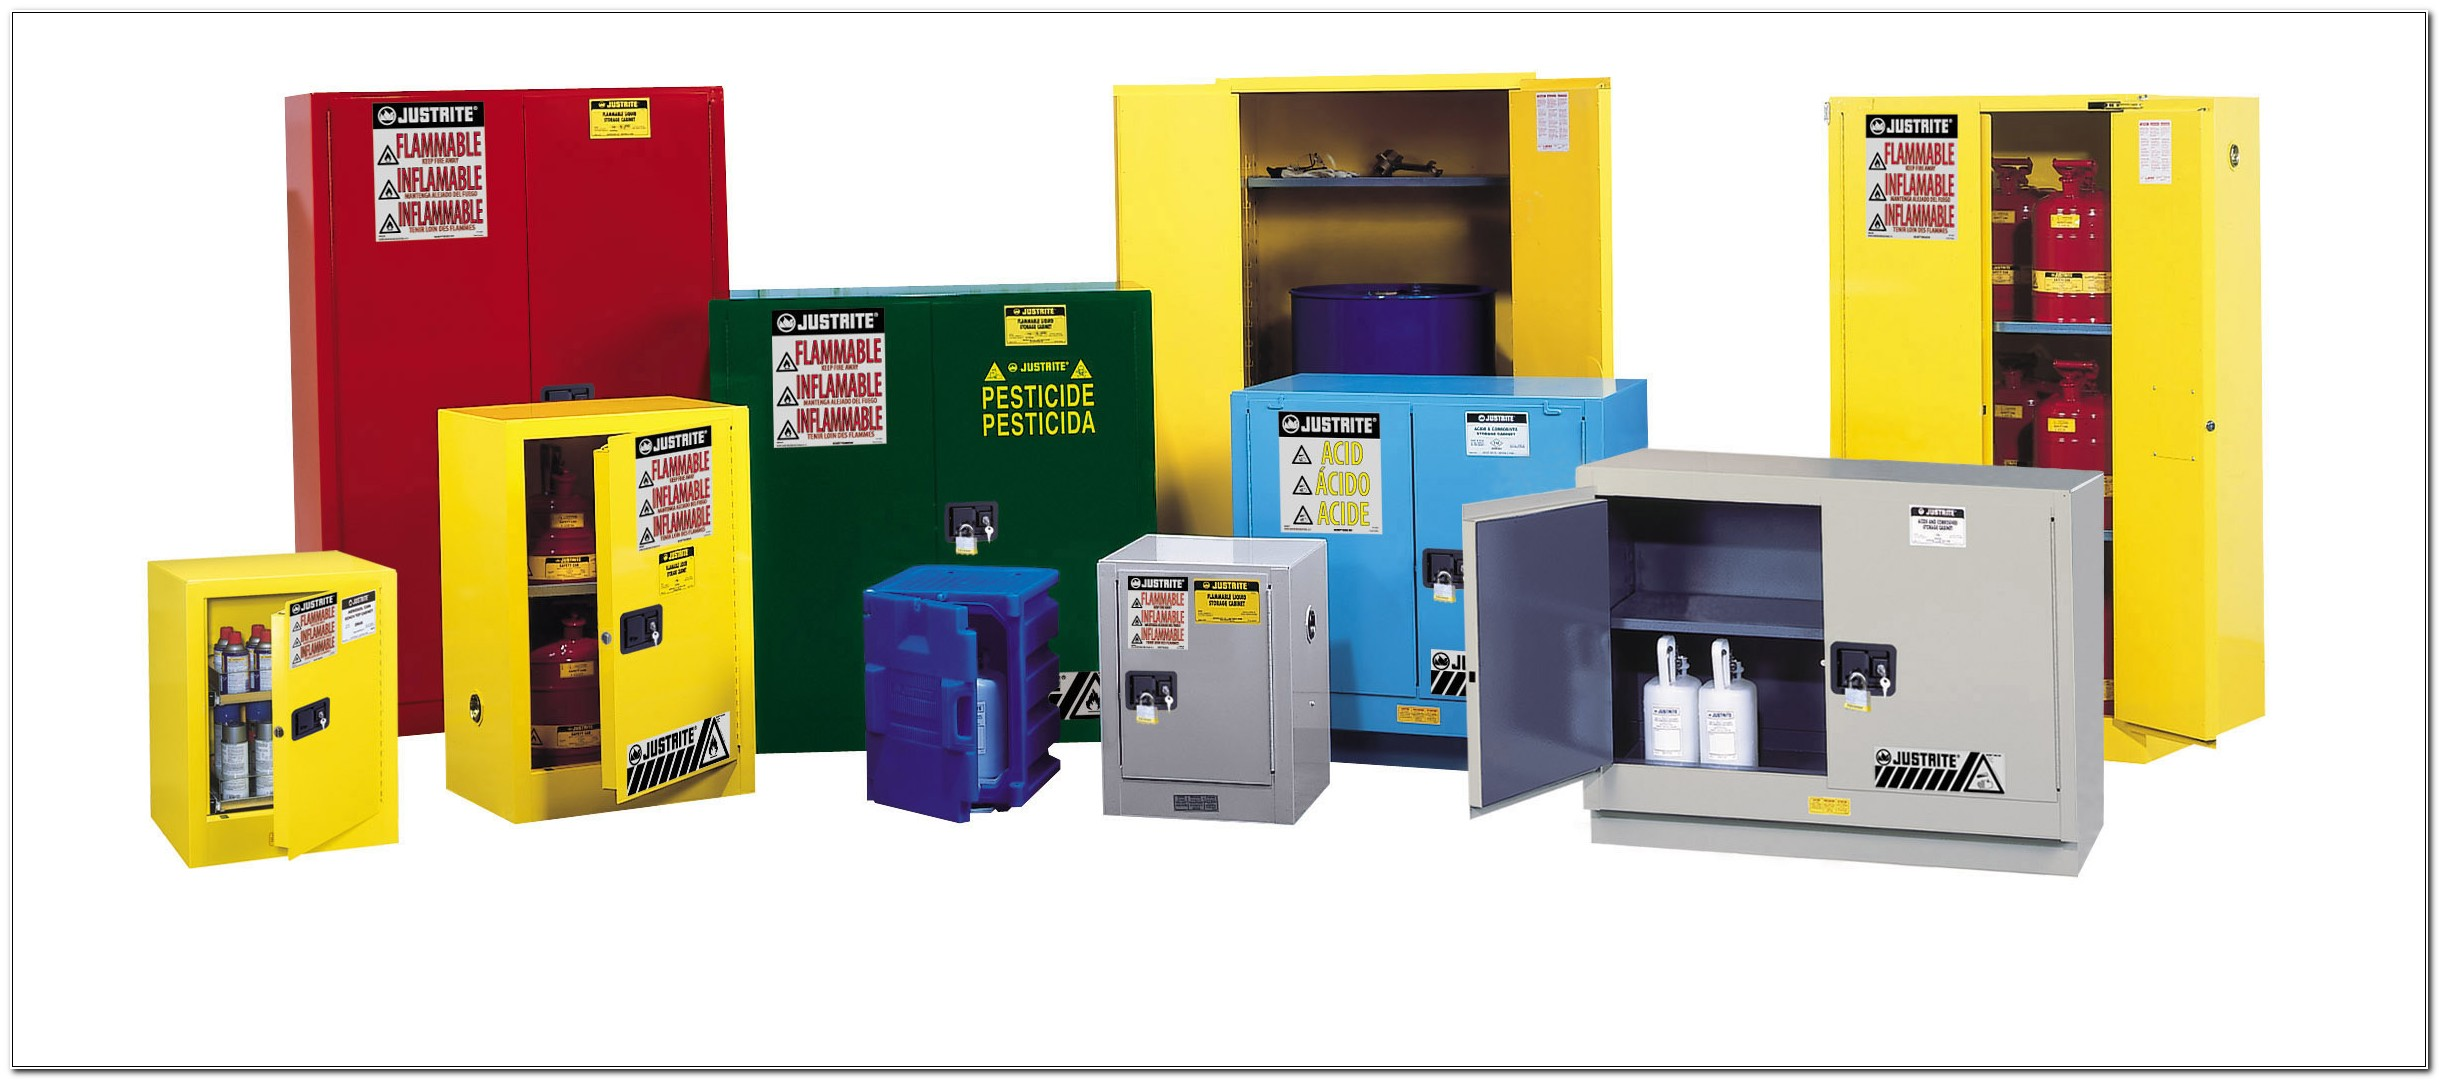 Fire Cabinets Flammable Liquids